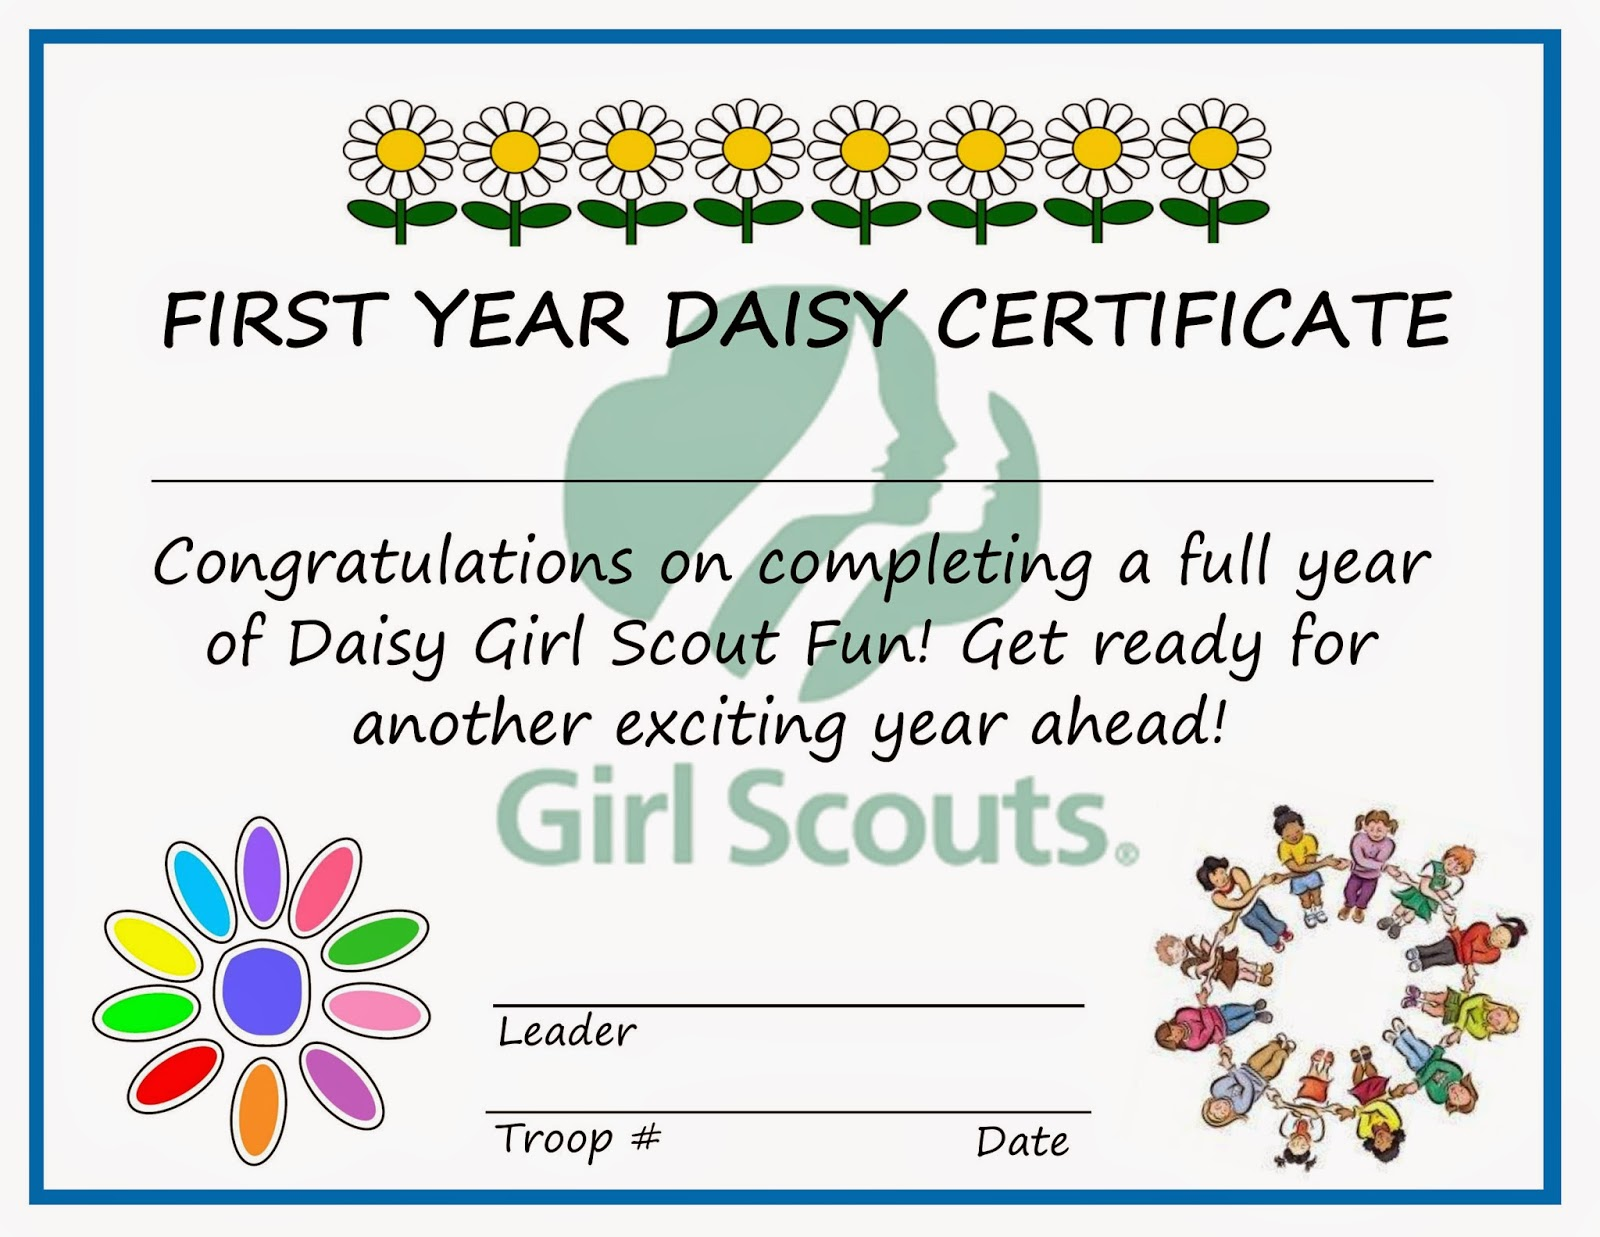 A mindful momma girl scouting momma first year daisy certificate yelopaper Choice Image